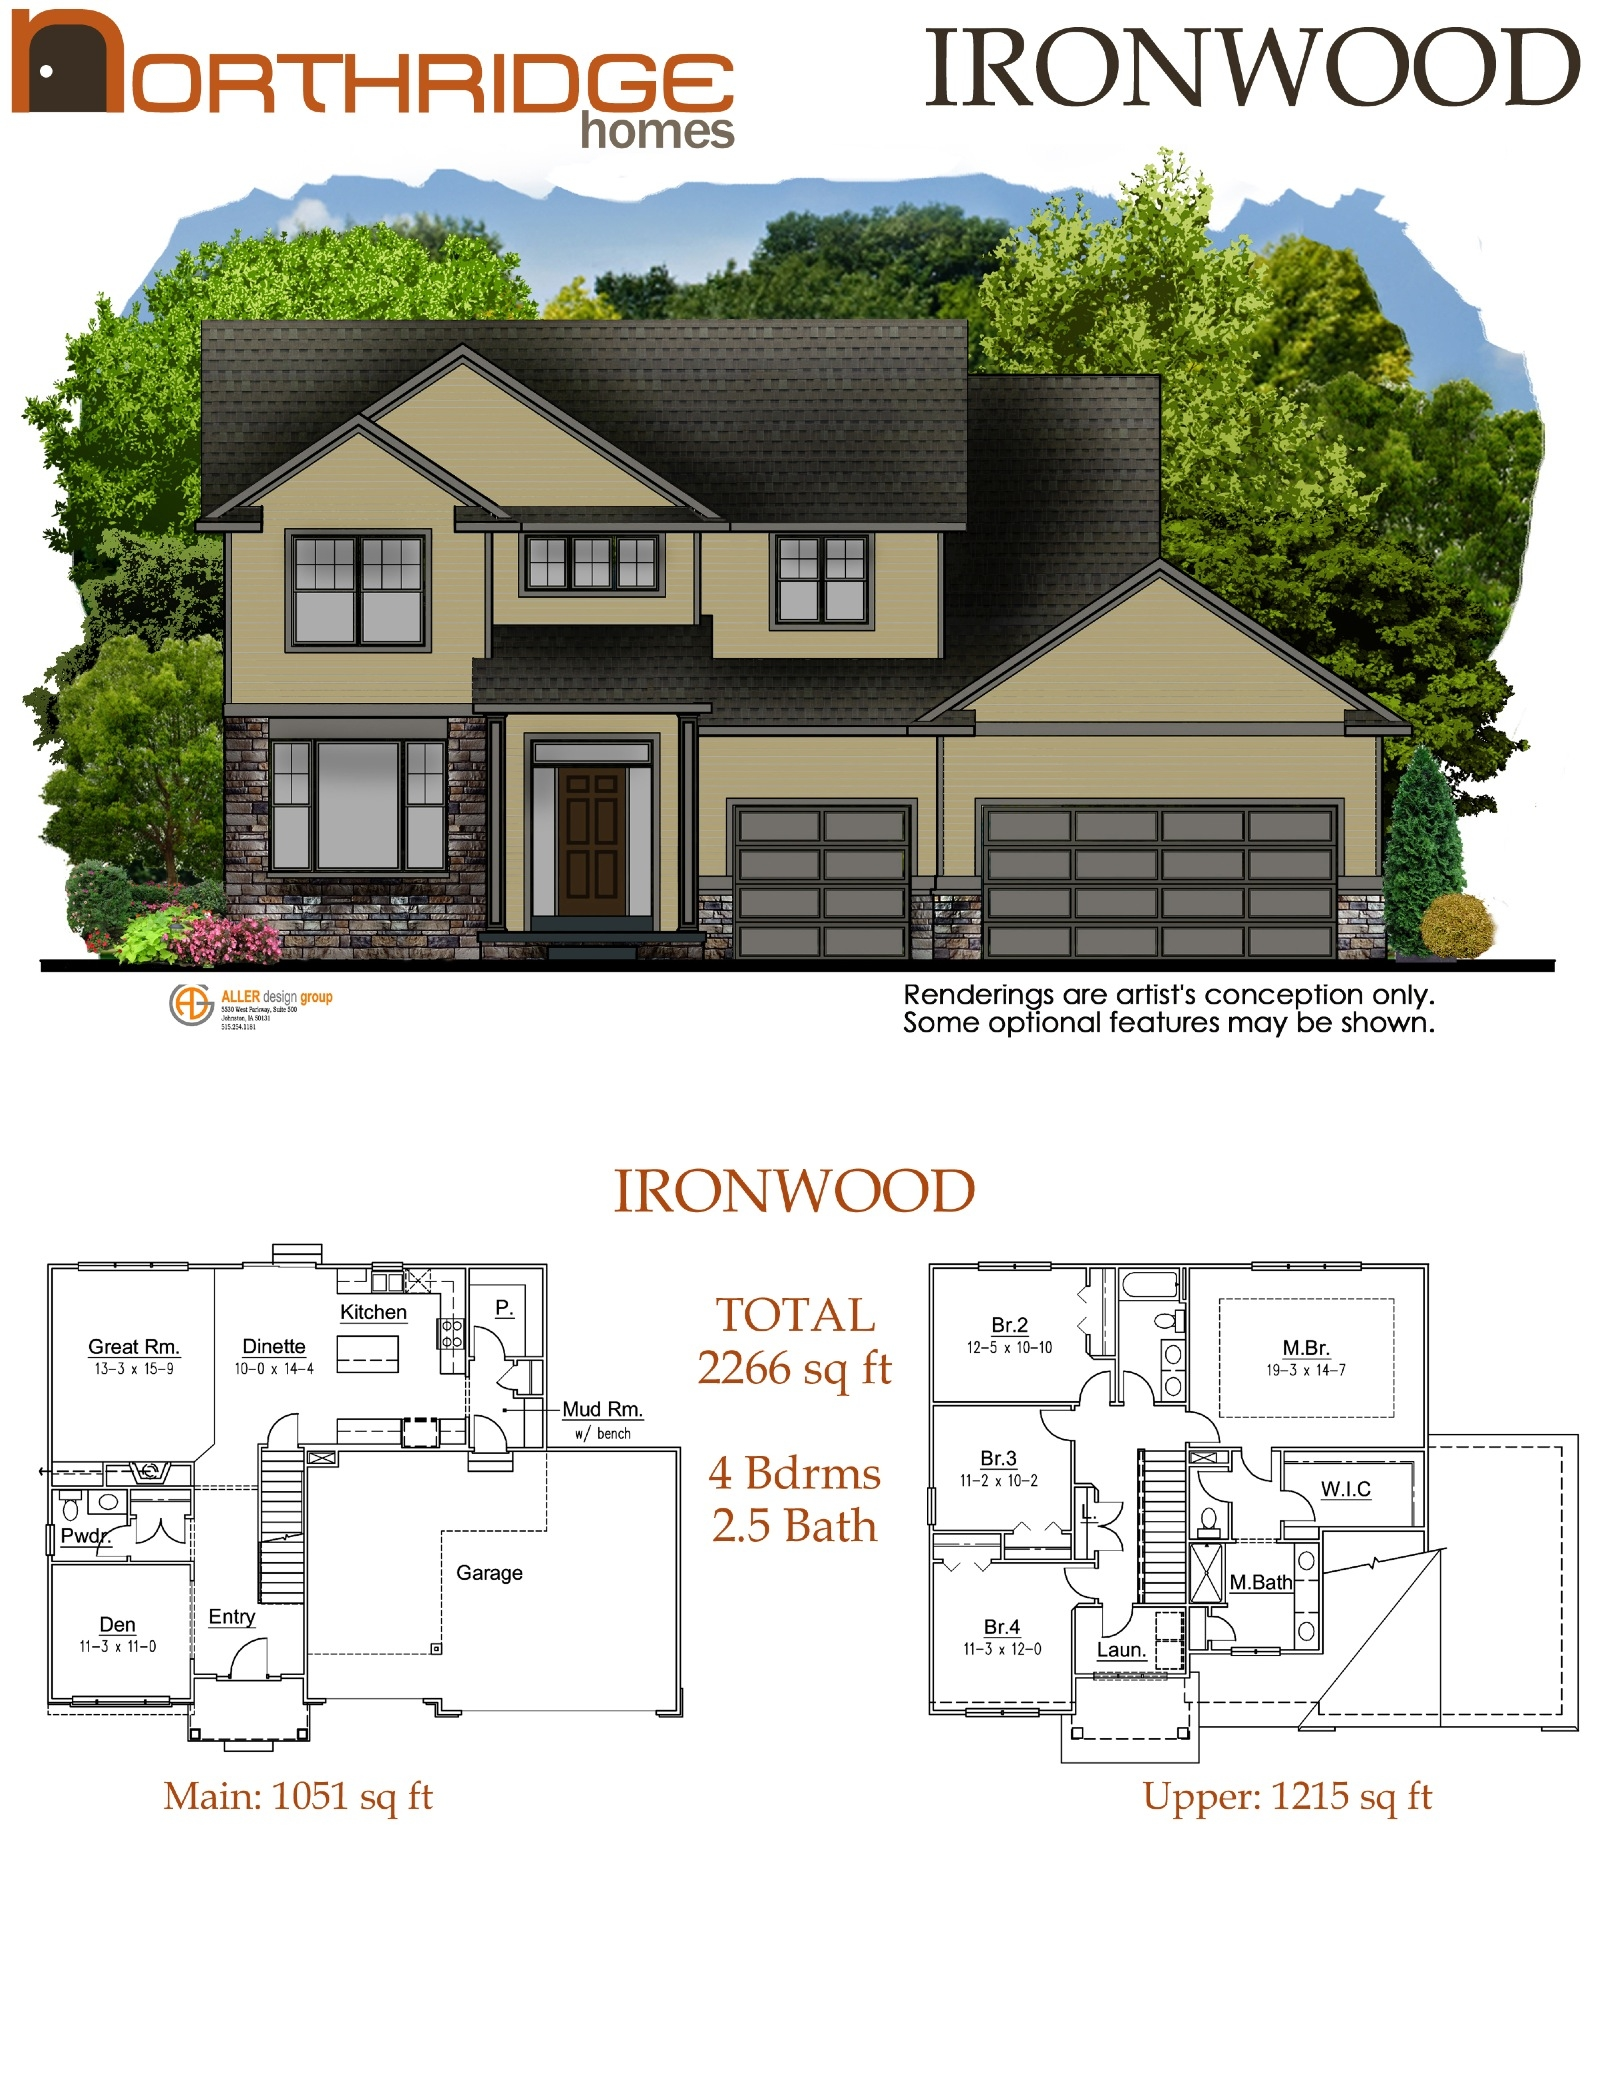 Northridge home floor plans des moines iowa for Design homes iowa